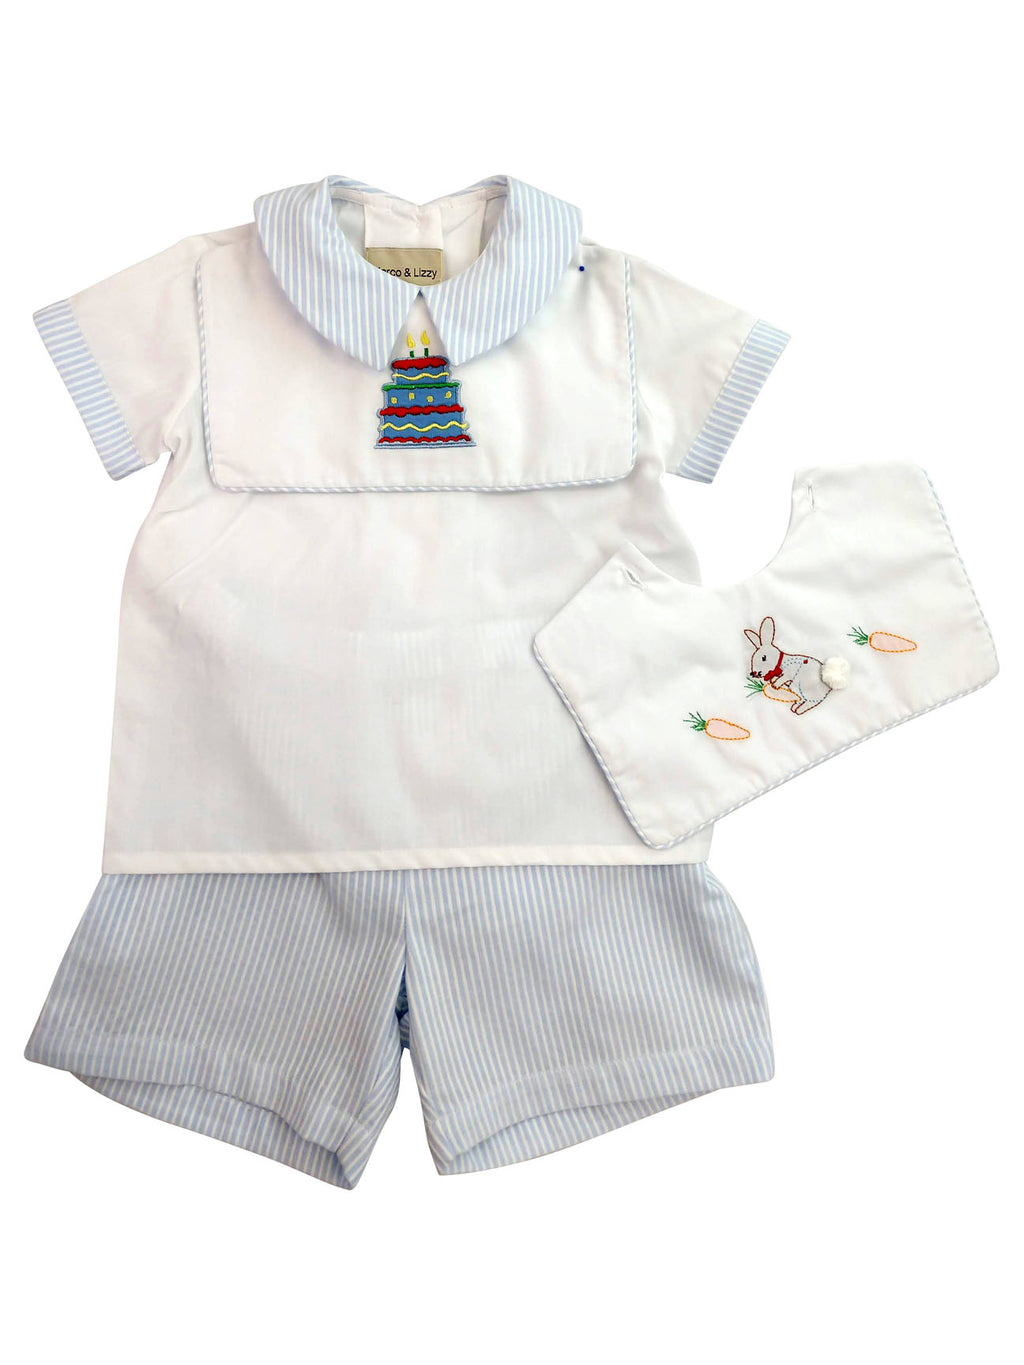 Birthday Boy's Short Set - Little Threads Inc. Children's Clothing